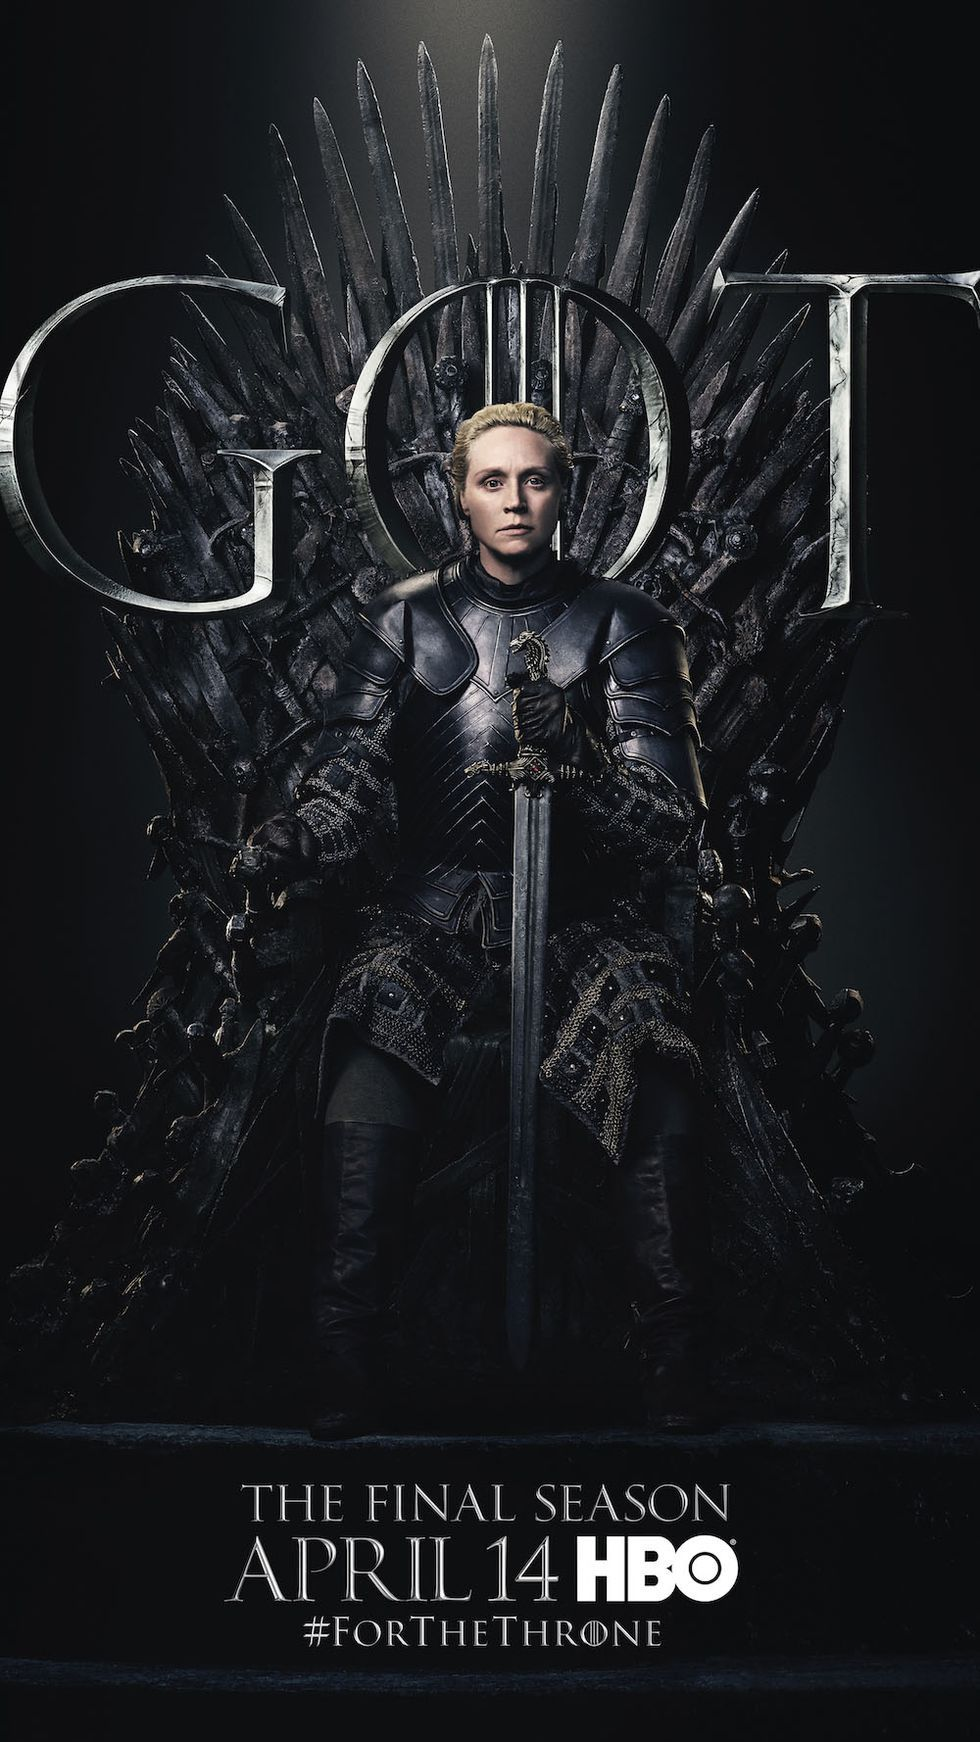 New Game Of Thrones Season 8 Posters Show Every Character On The Throne